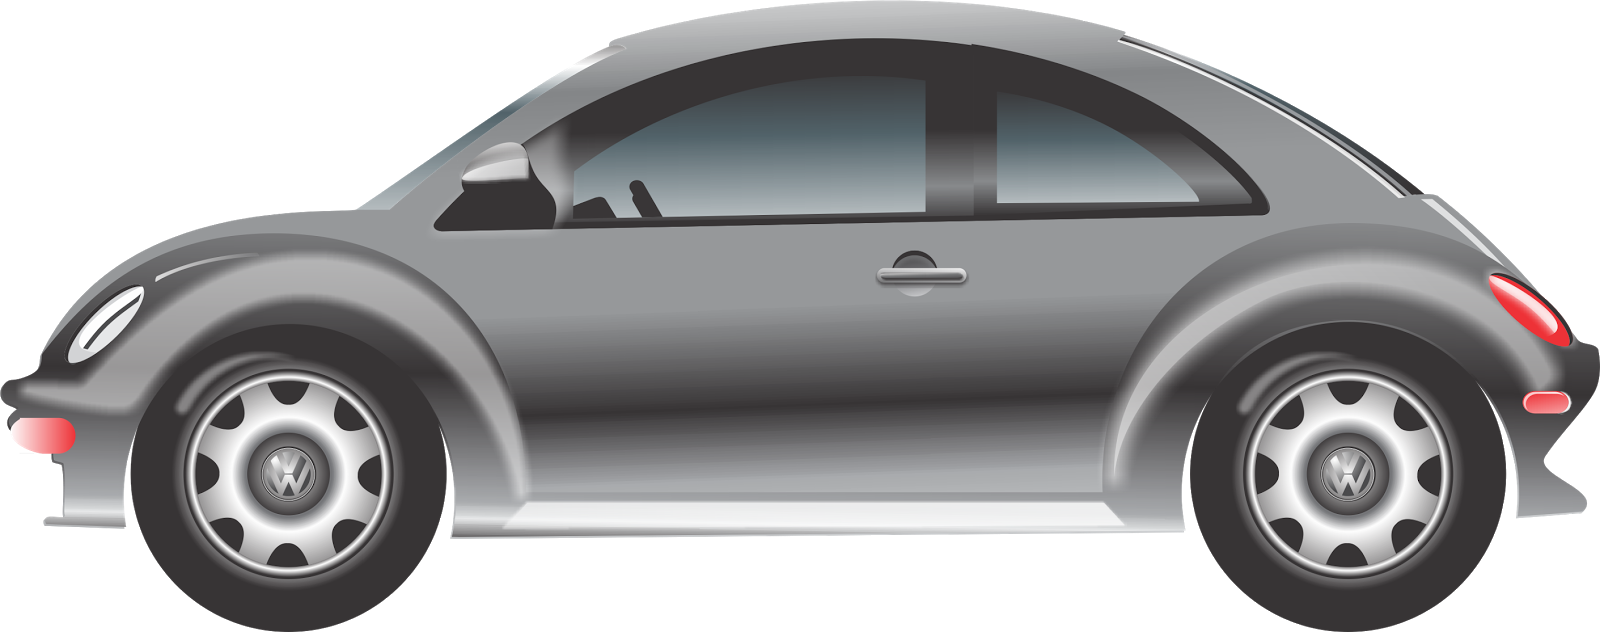 Vw Beetle Vector Png Clipart.